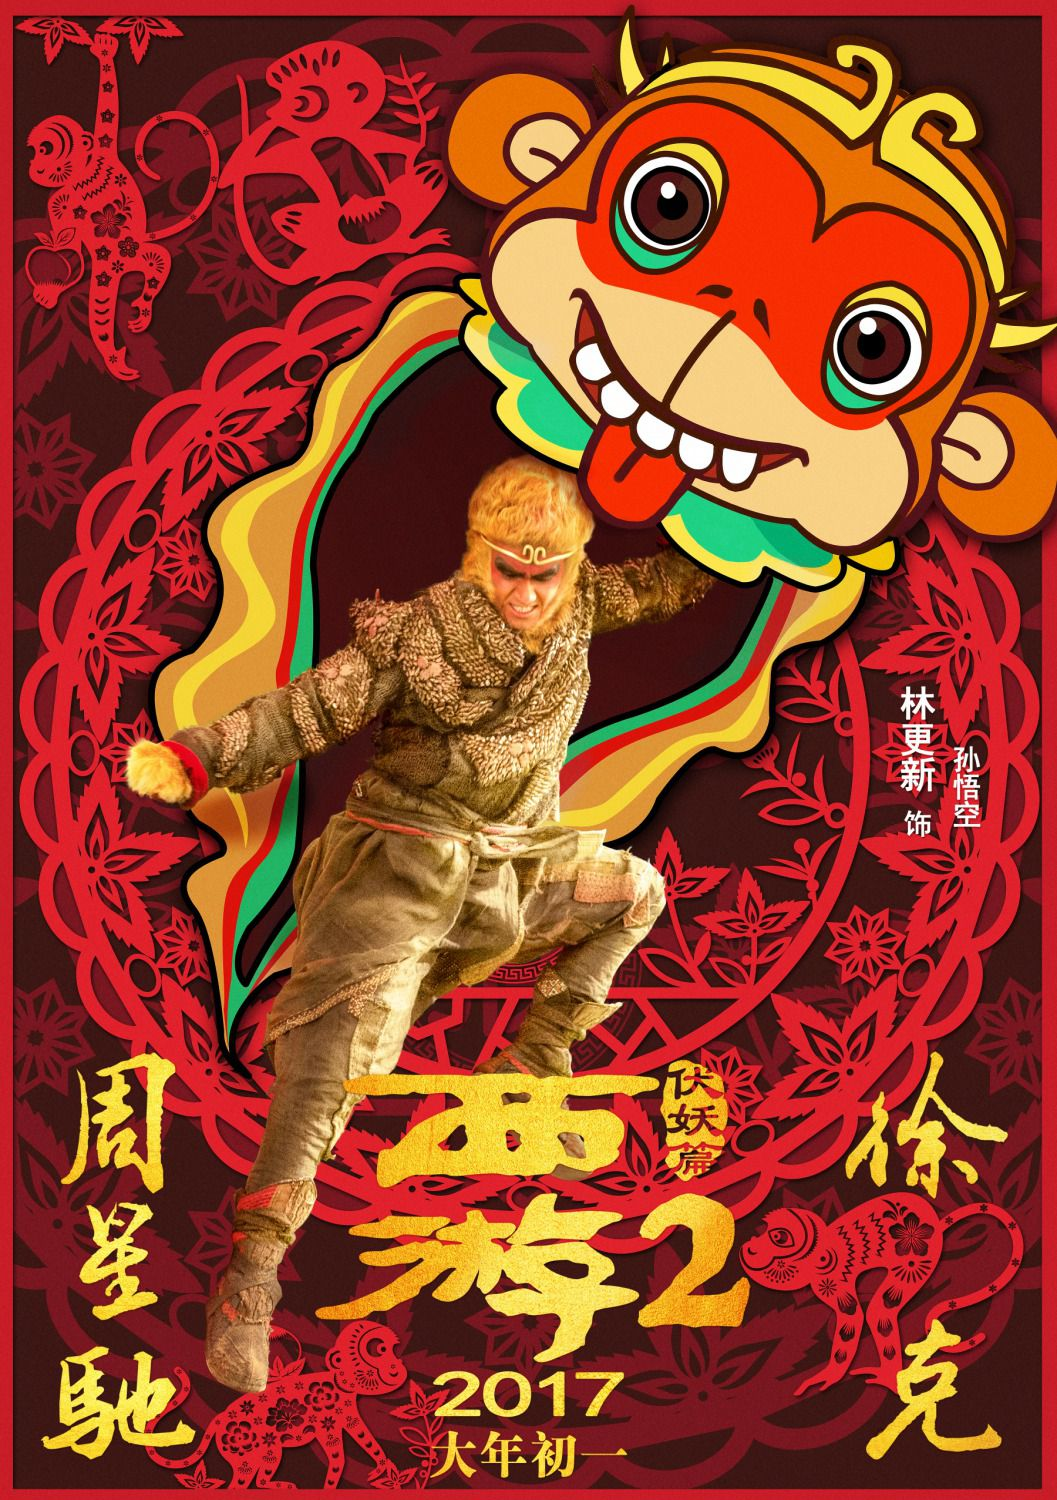 Journey to the West Demon Chapter - asian fantasy film poster